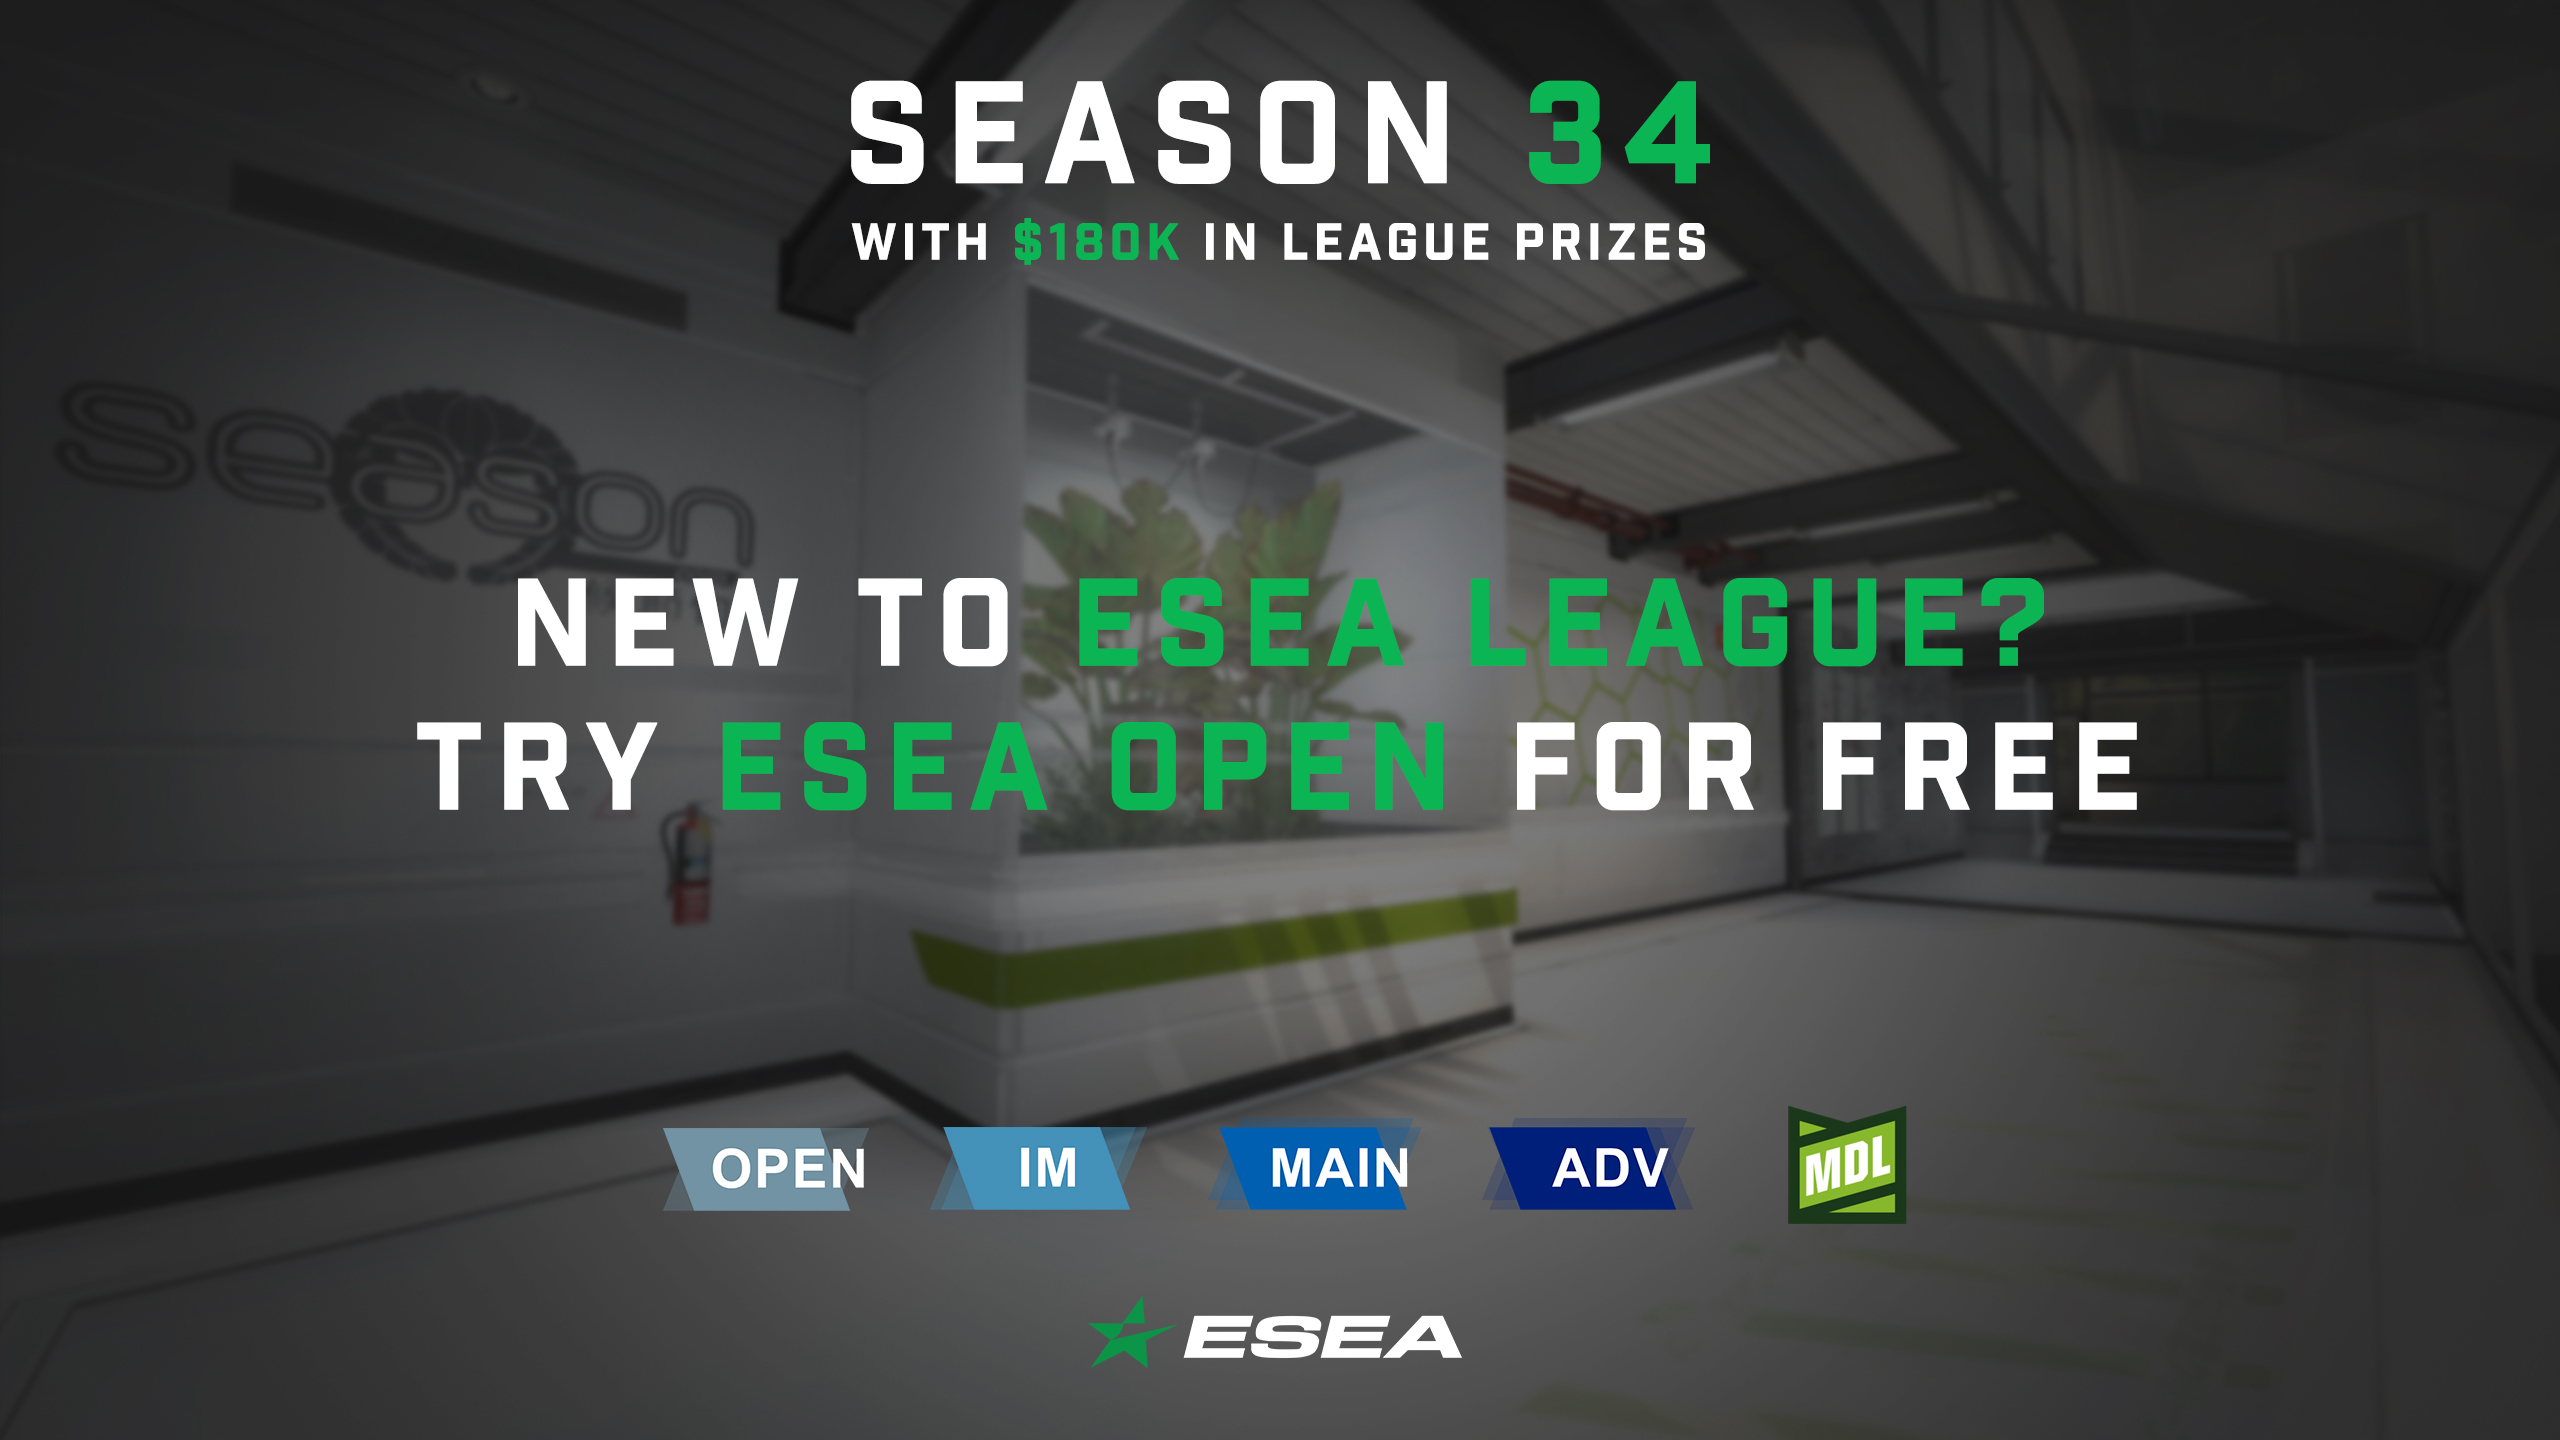 NEW TO ESEA LEAGUE? TRY FOR FREE!